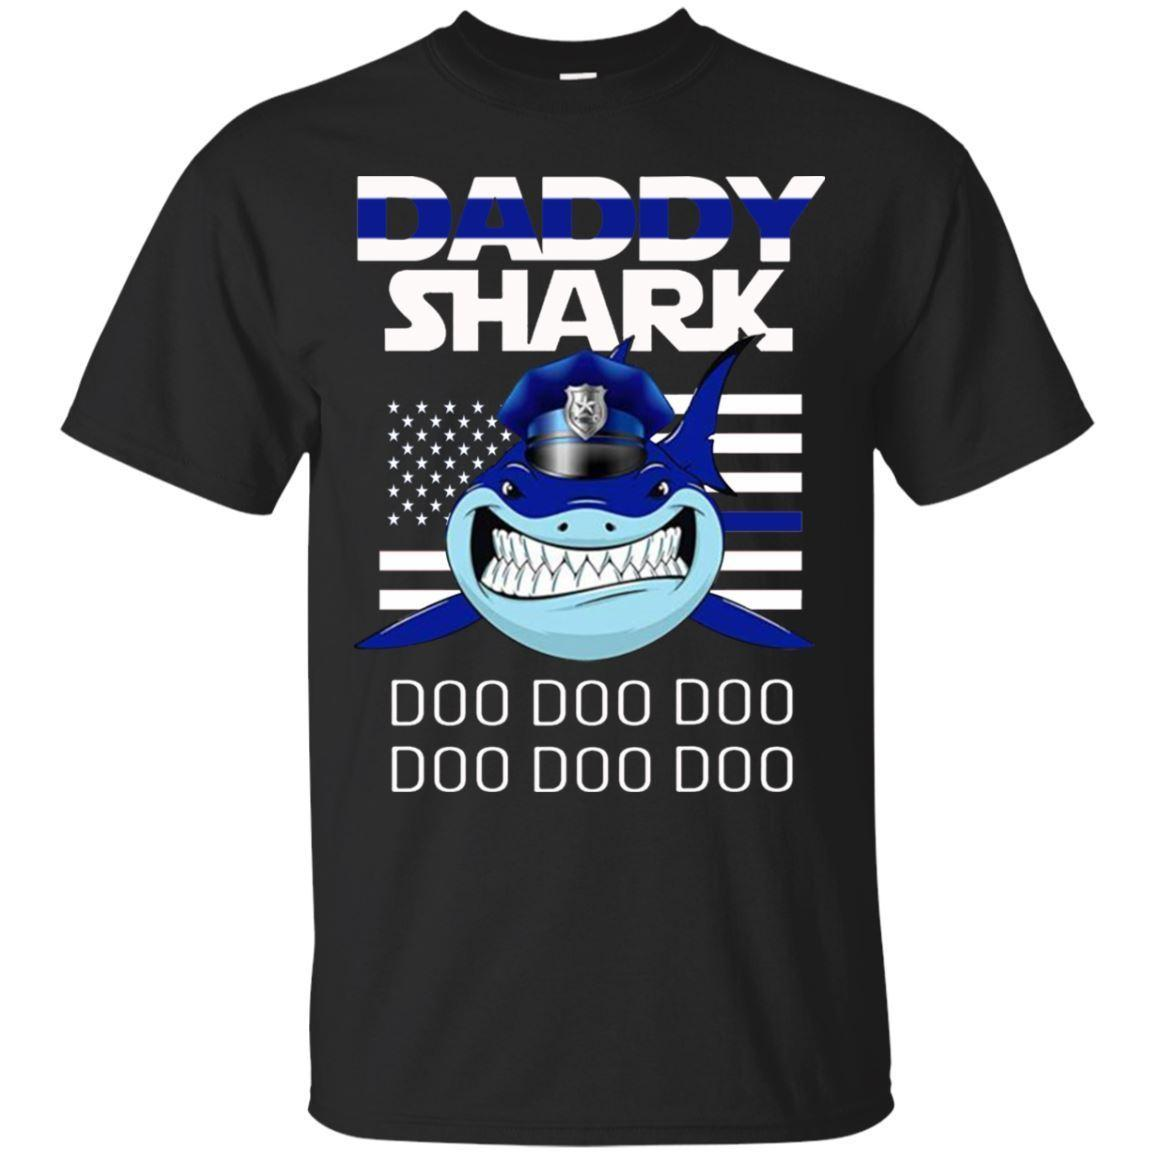 be11d01d91f Police Daddy Shark Doo Doo Doo T Shirt Funny Men S Tee Shirt Short Sleeve T  Shirts Shirt From Goodencounter60